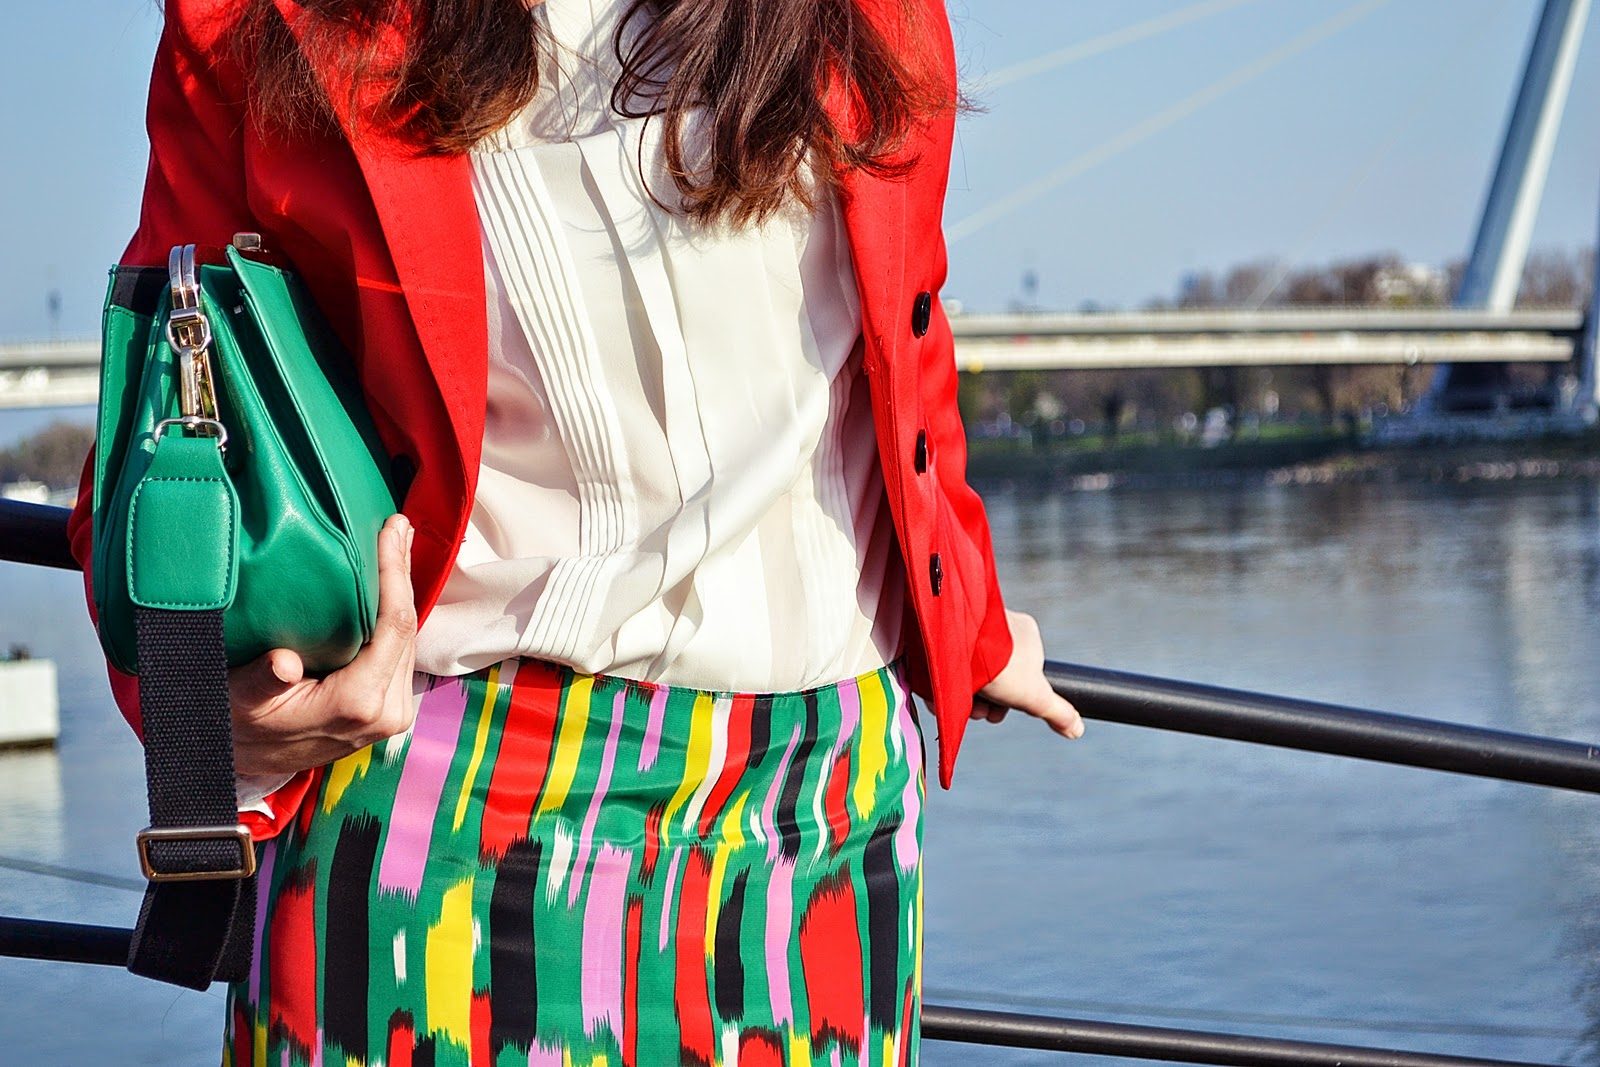 Be original with this bag Katharine-fashion is beautiful